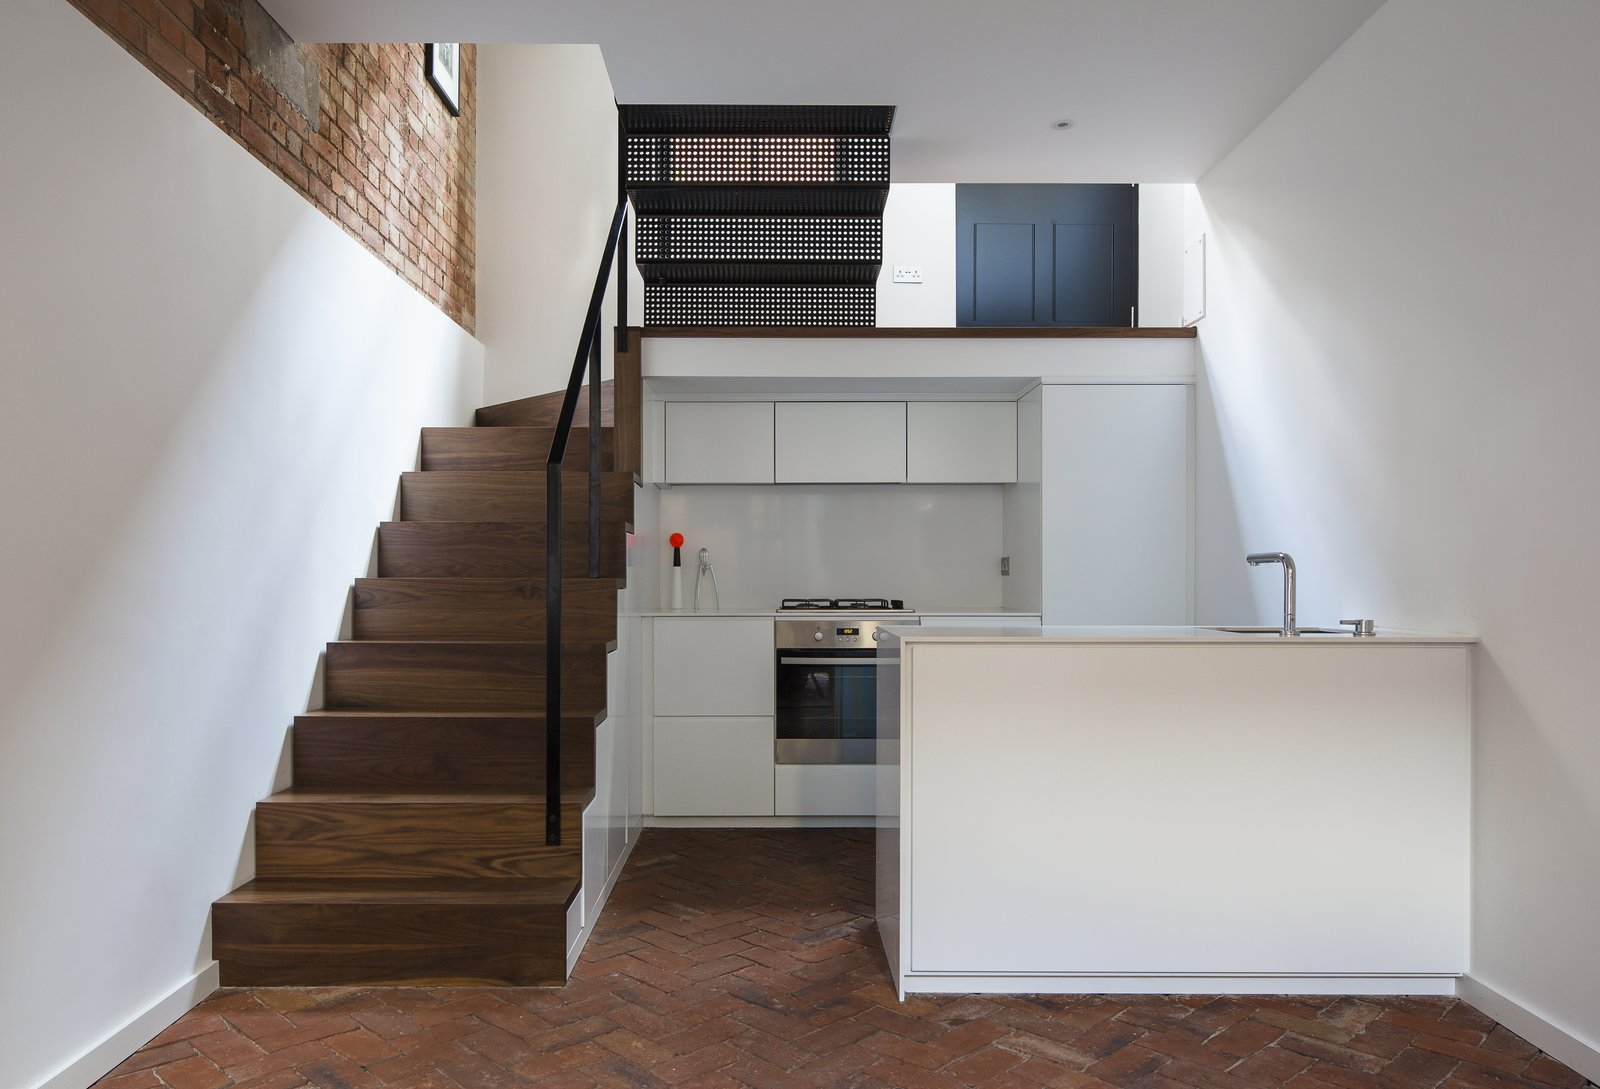 The kitchen is situated in a sunken basement, underneath the staircase's walnuts steps. The same joiner who built the house's timber elements built the white cabinetry which are finished in a 40% gloss lacquer. Silestone countertops and integrated appliances maintain the space's simple lines. Additional storage is fitted under the staircase. Tagged: Staircase, Metal Tread, and Wood Tread.  Cleverly Stacked Floors Form a Roomy House On a Tight Lot by David Rudin